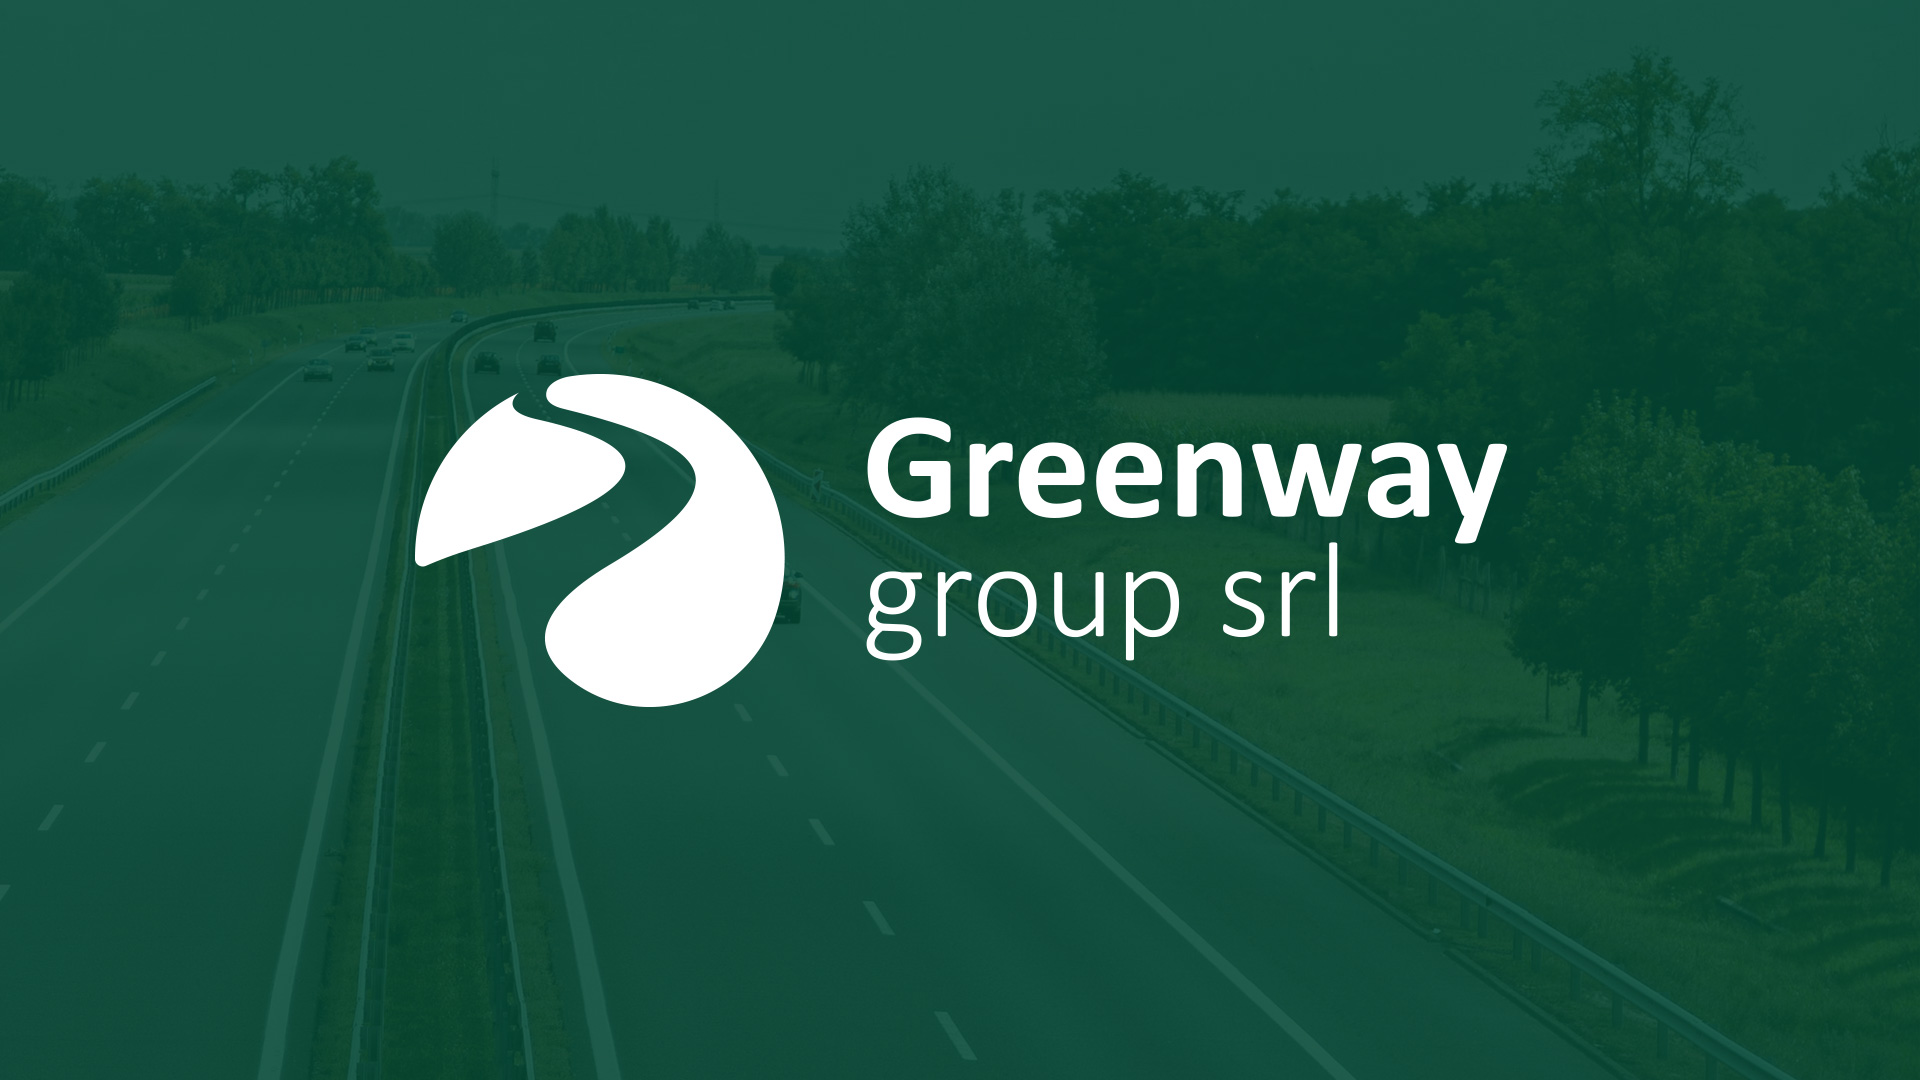 Greenway group srl